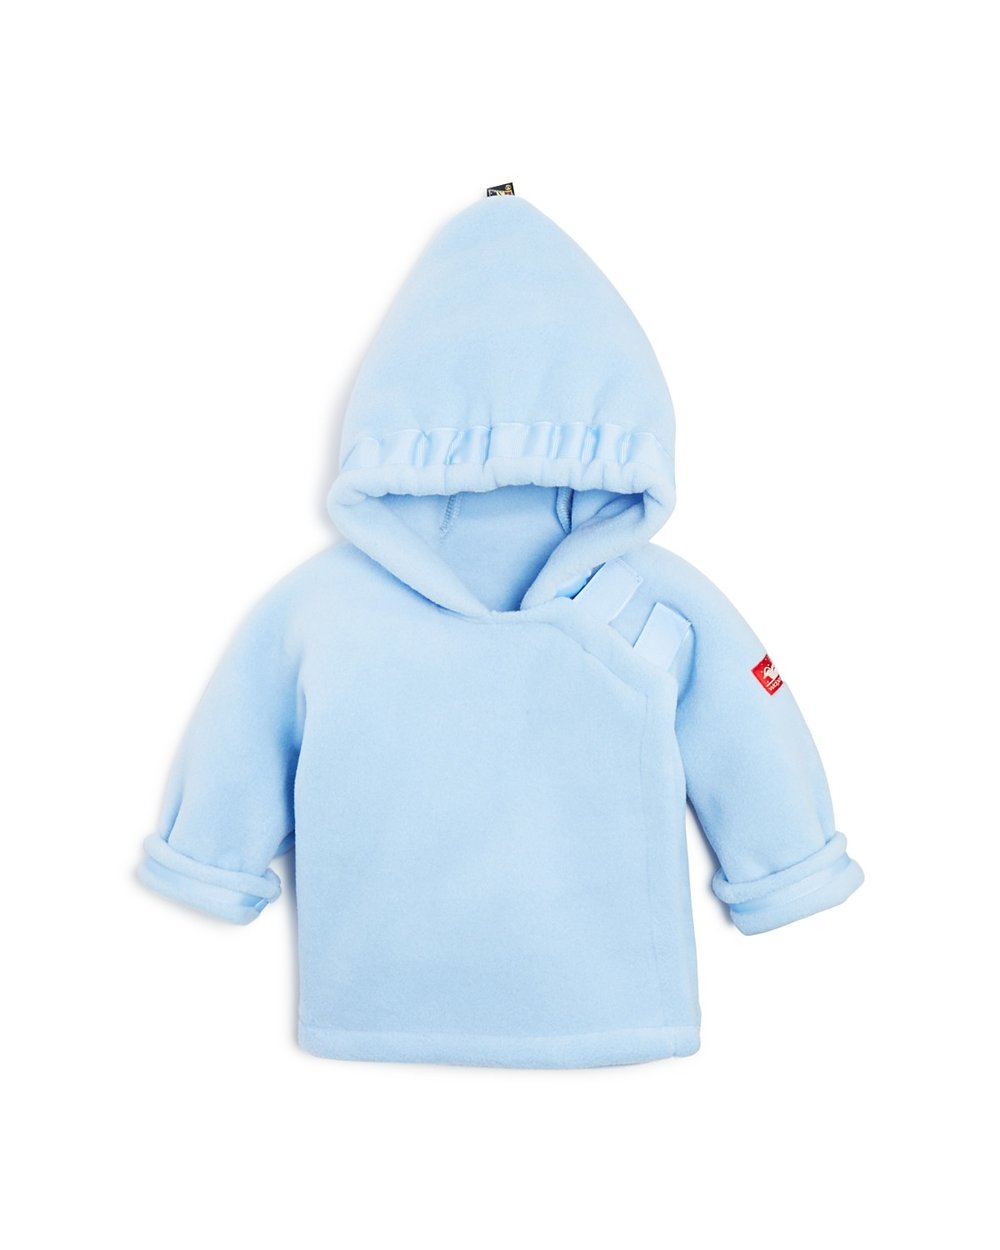 Widgeon Baby Polartec Fleece Jacket, $34.99-$56-.jpeg